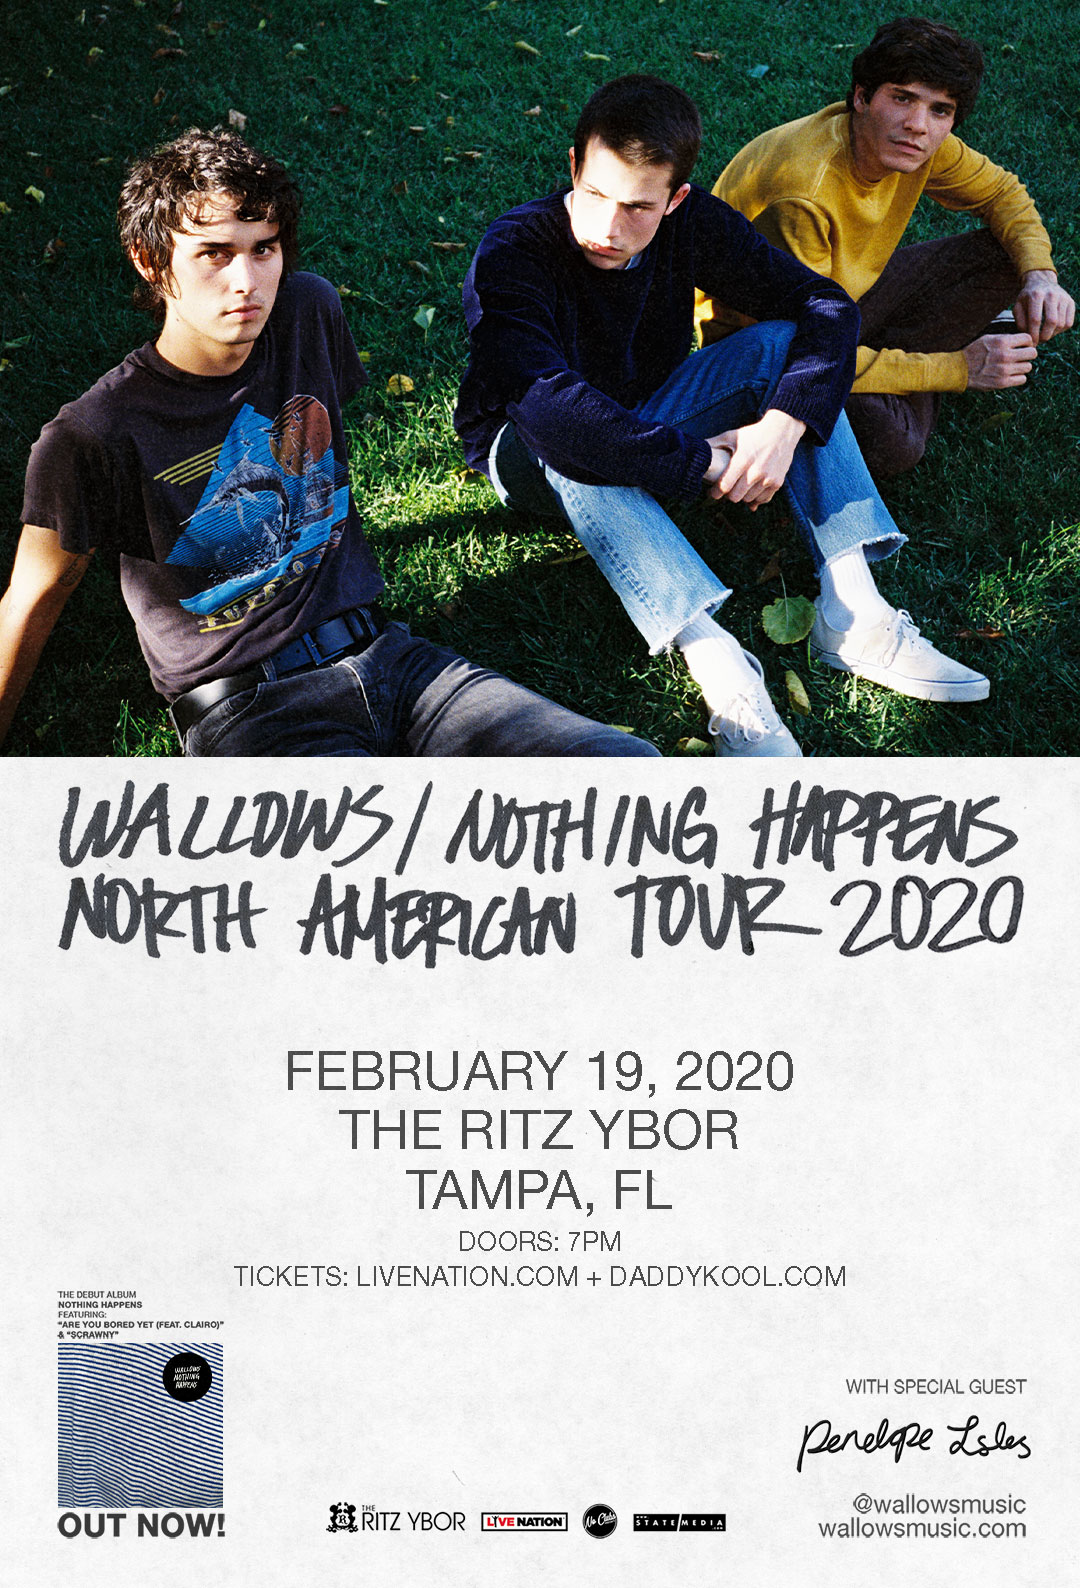 WALLOWS – Nothing Happens Tour 2020 at The RITZ Ybor – 2/19/2020